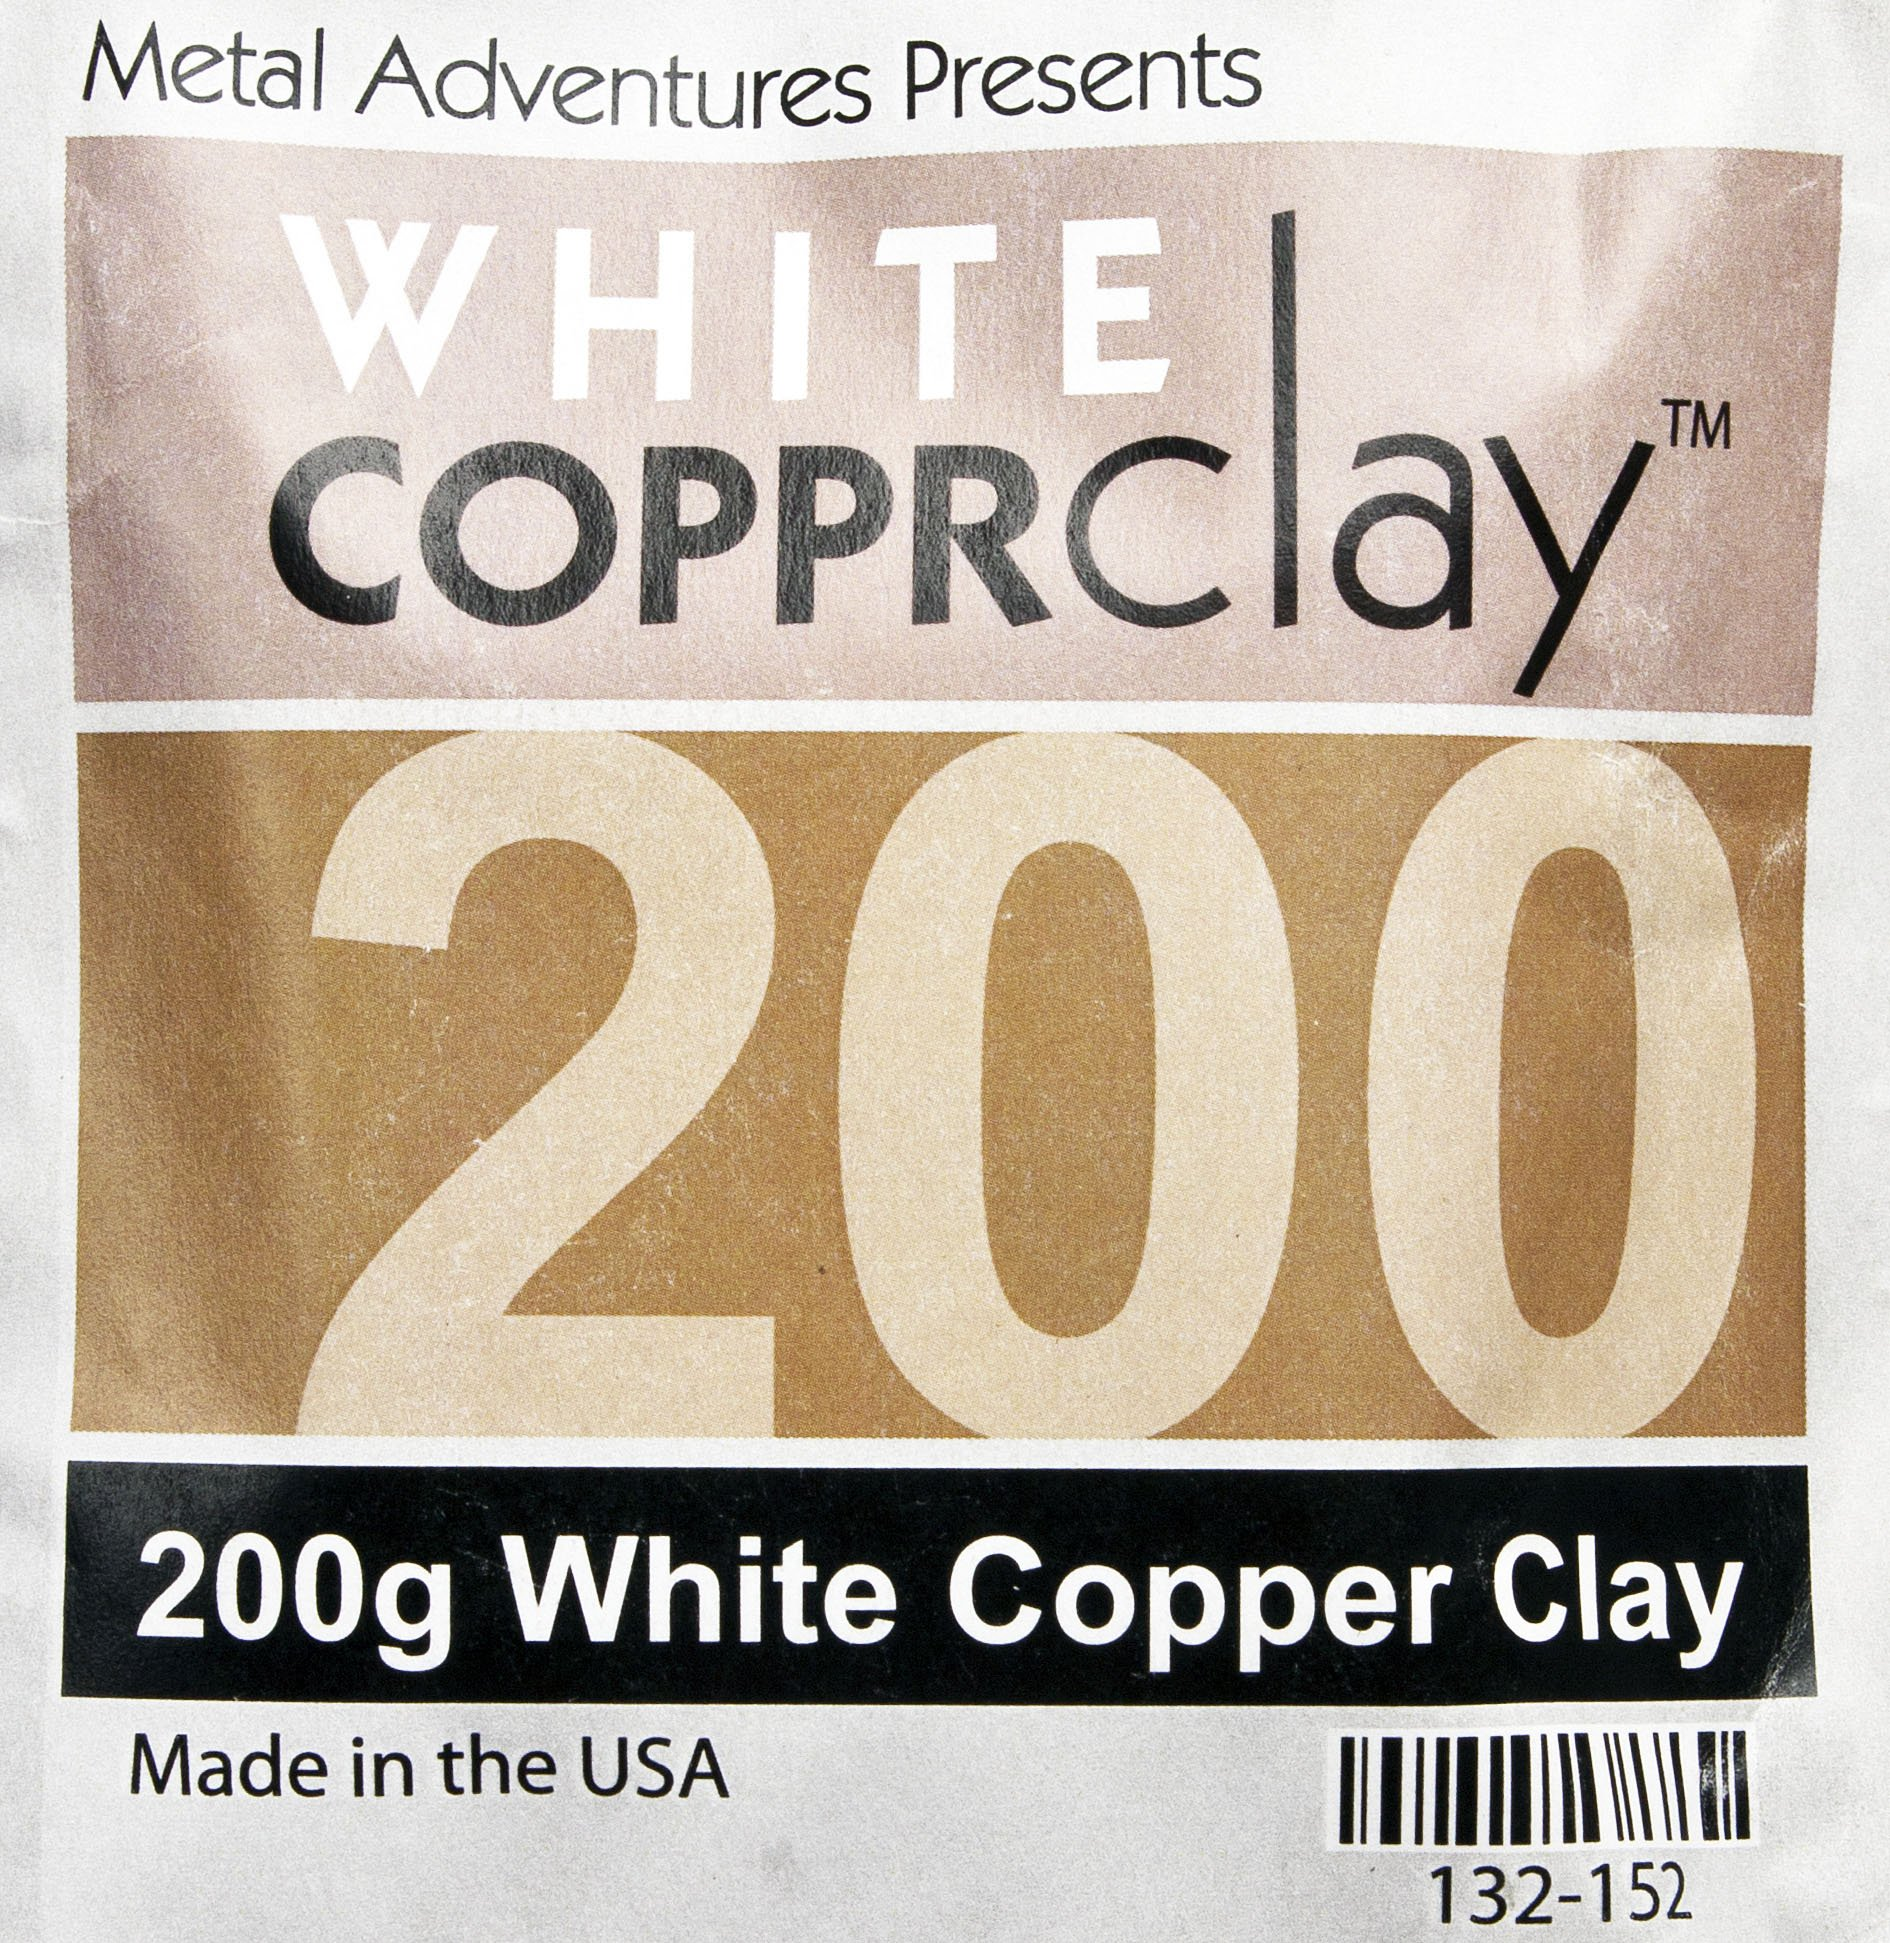 White COPPRclay - 200 Grams by White COPPRclay (Image #1)